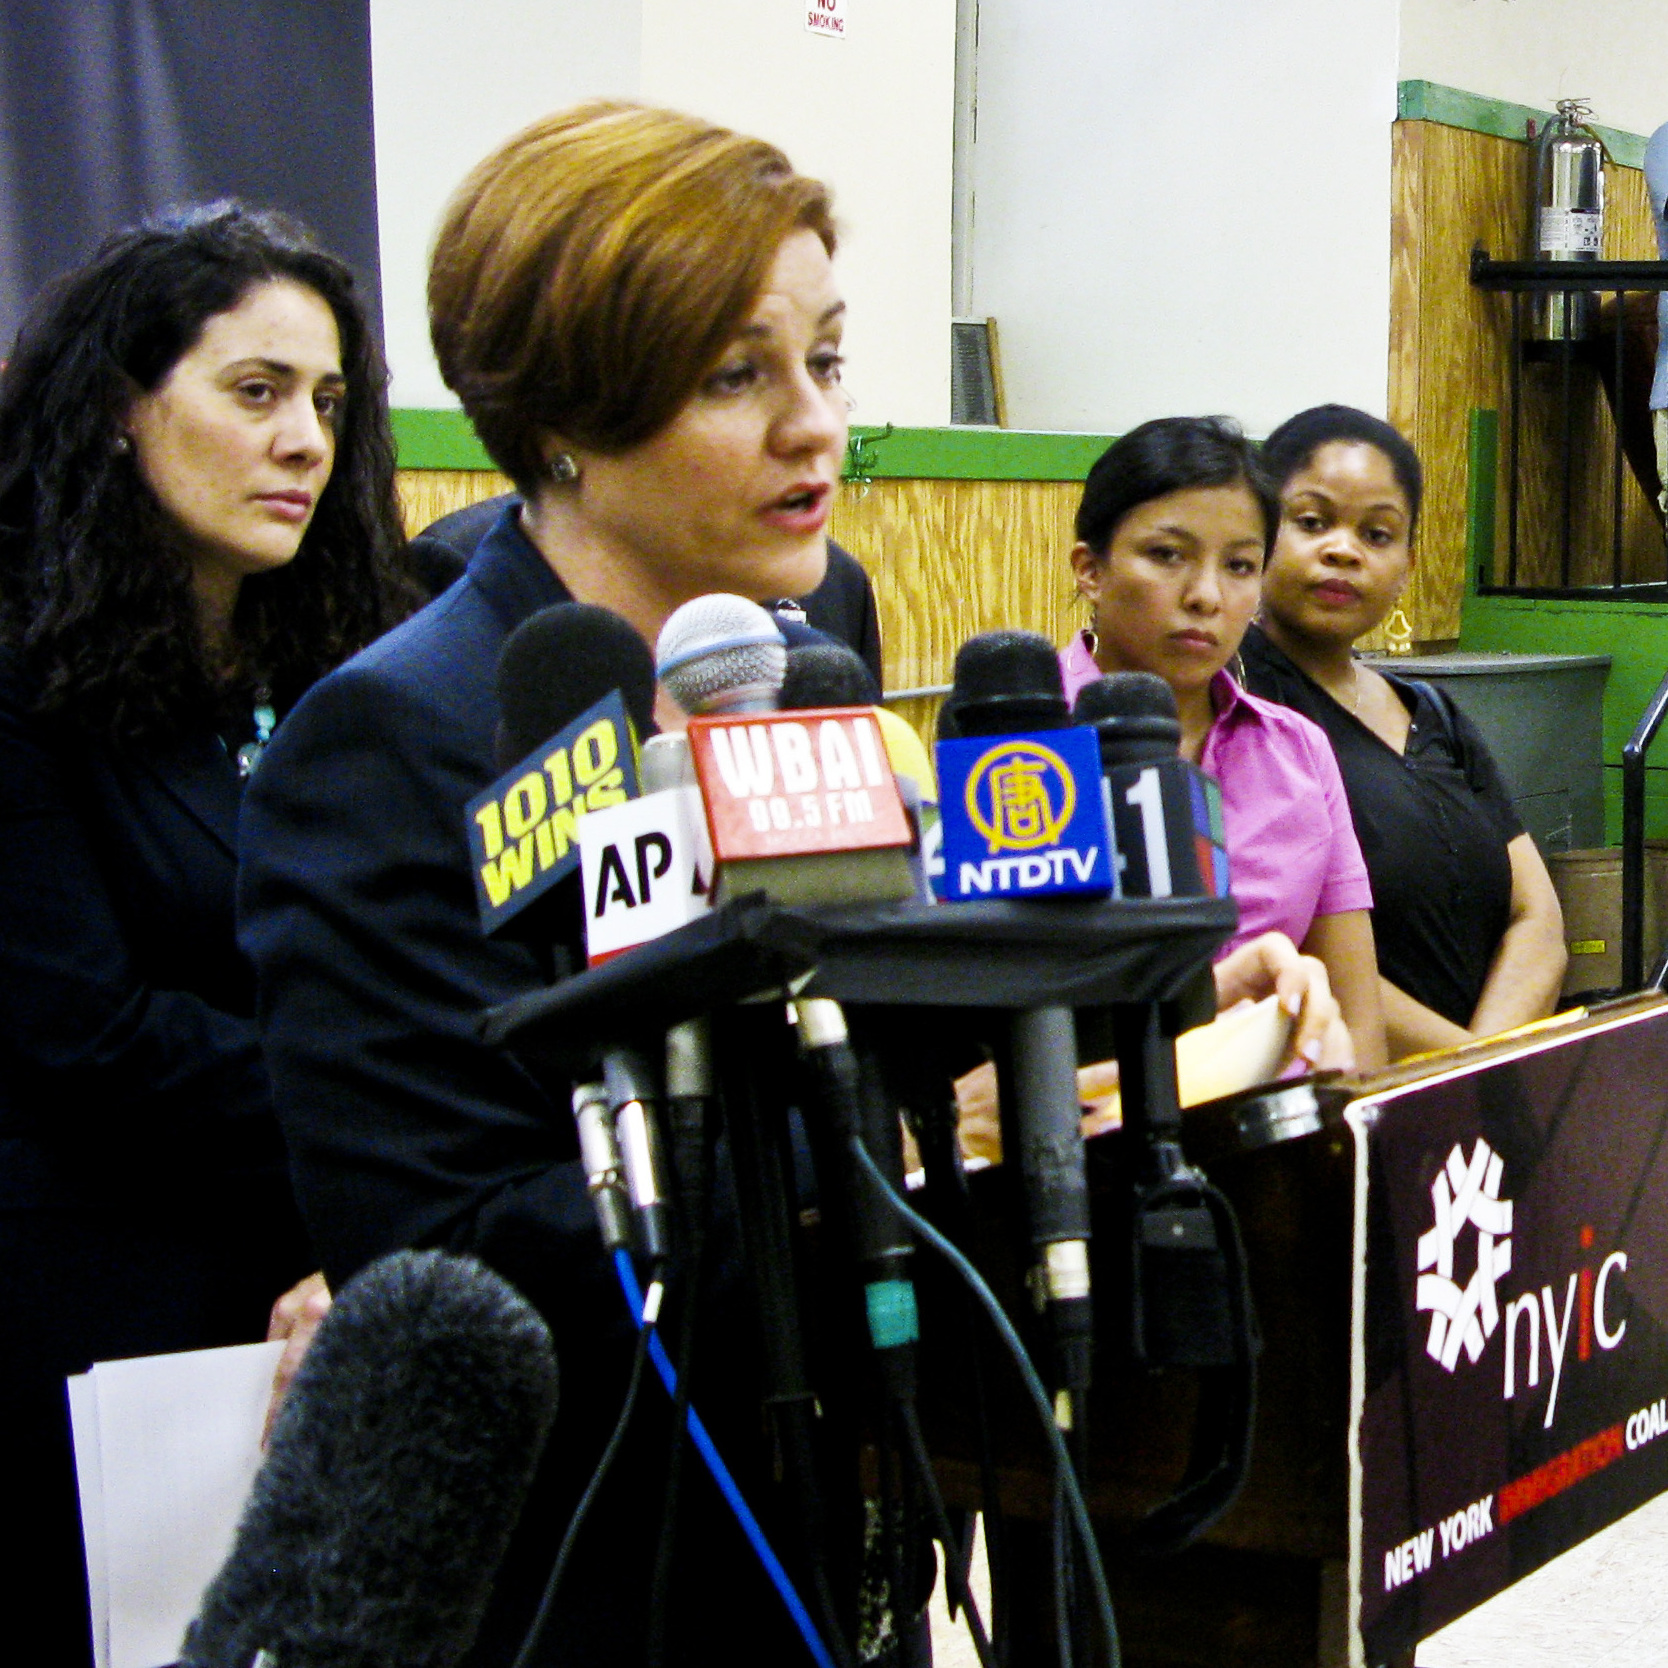 Christine Quinn, speaker of the New York City Council, addresses the audience during a press conference organized by the New York Immigration Coalition, the New York State Immigrant Action Fund and the New York State Youth Leadership Council.